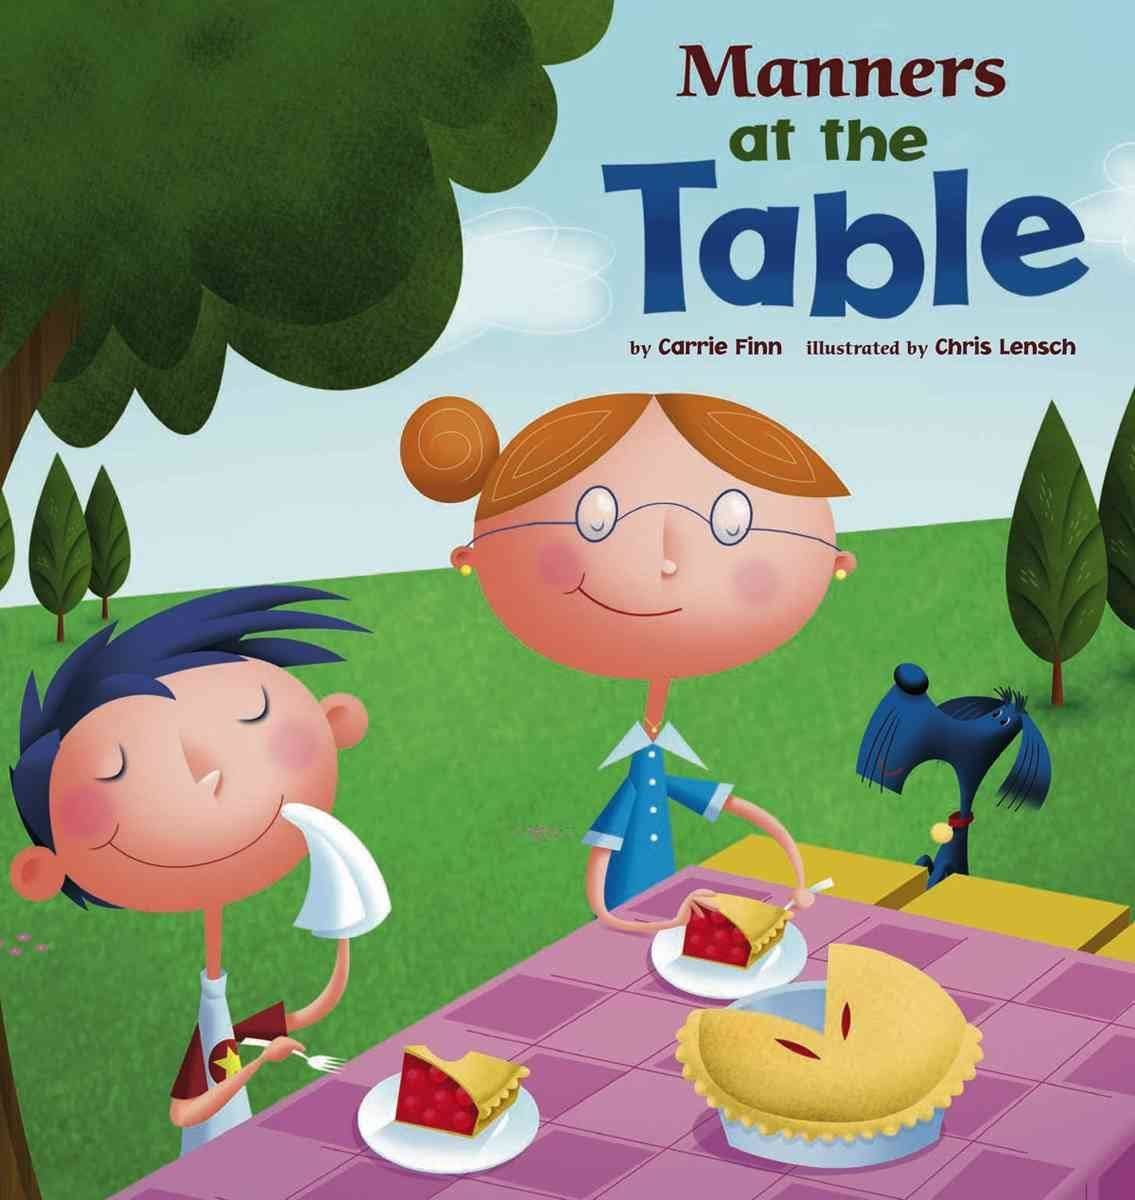 Mystery Reader Book For Pre K4 Class About Table Manners